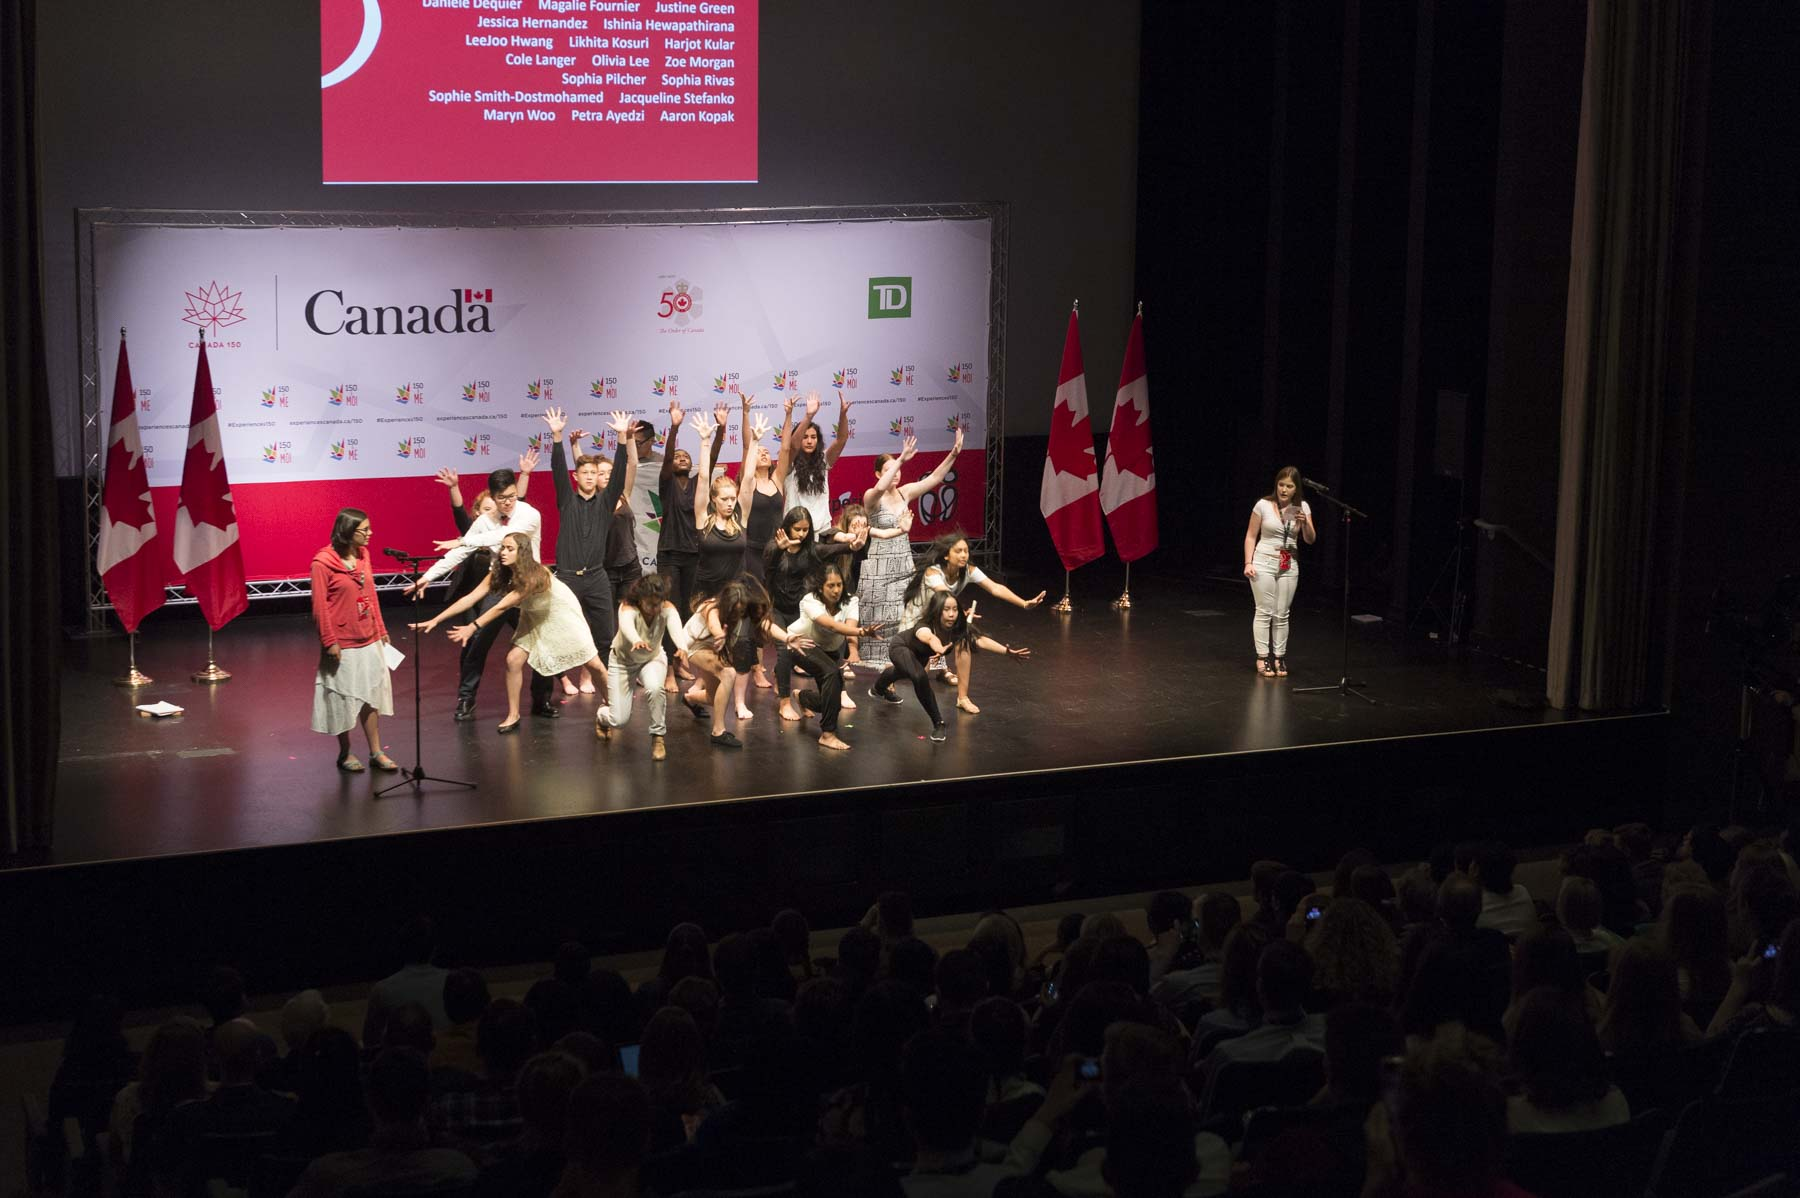 One of Canada 150's Signature Initiatives, Canada 150&Me is designed to put young Canadians between the ages of 14 and 19 at the forefront of the national celebrations. Thousands of youth from across the country have been engaged in these discussions in person and online. Each forum focused on topics relevant to youth today including the environment, immigration and diversity, Canada in the world, and human rights.